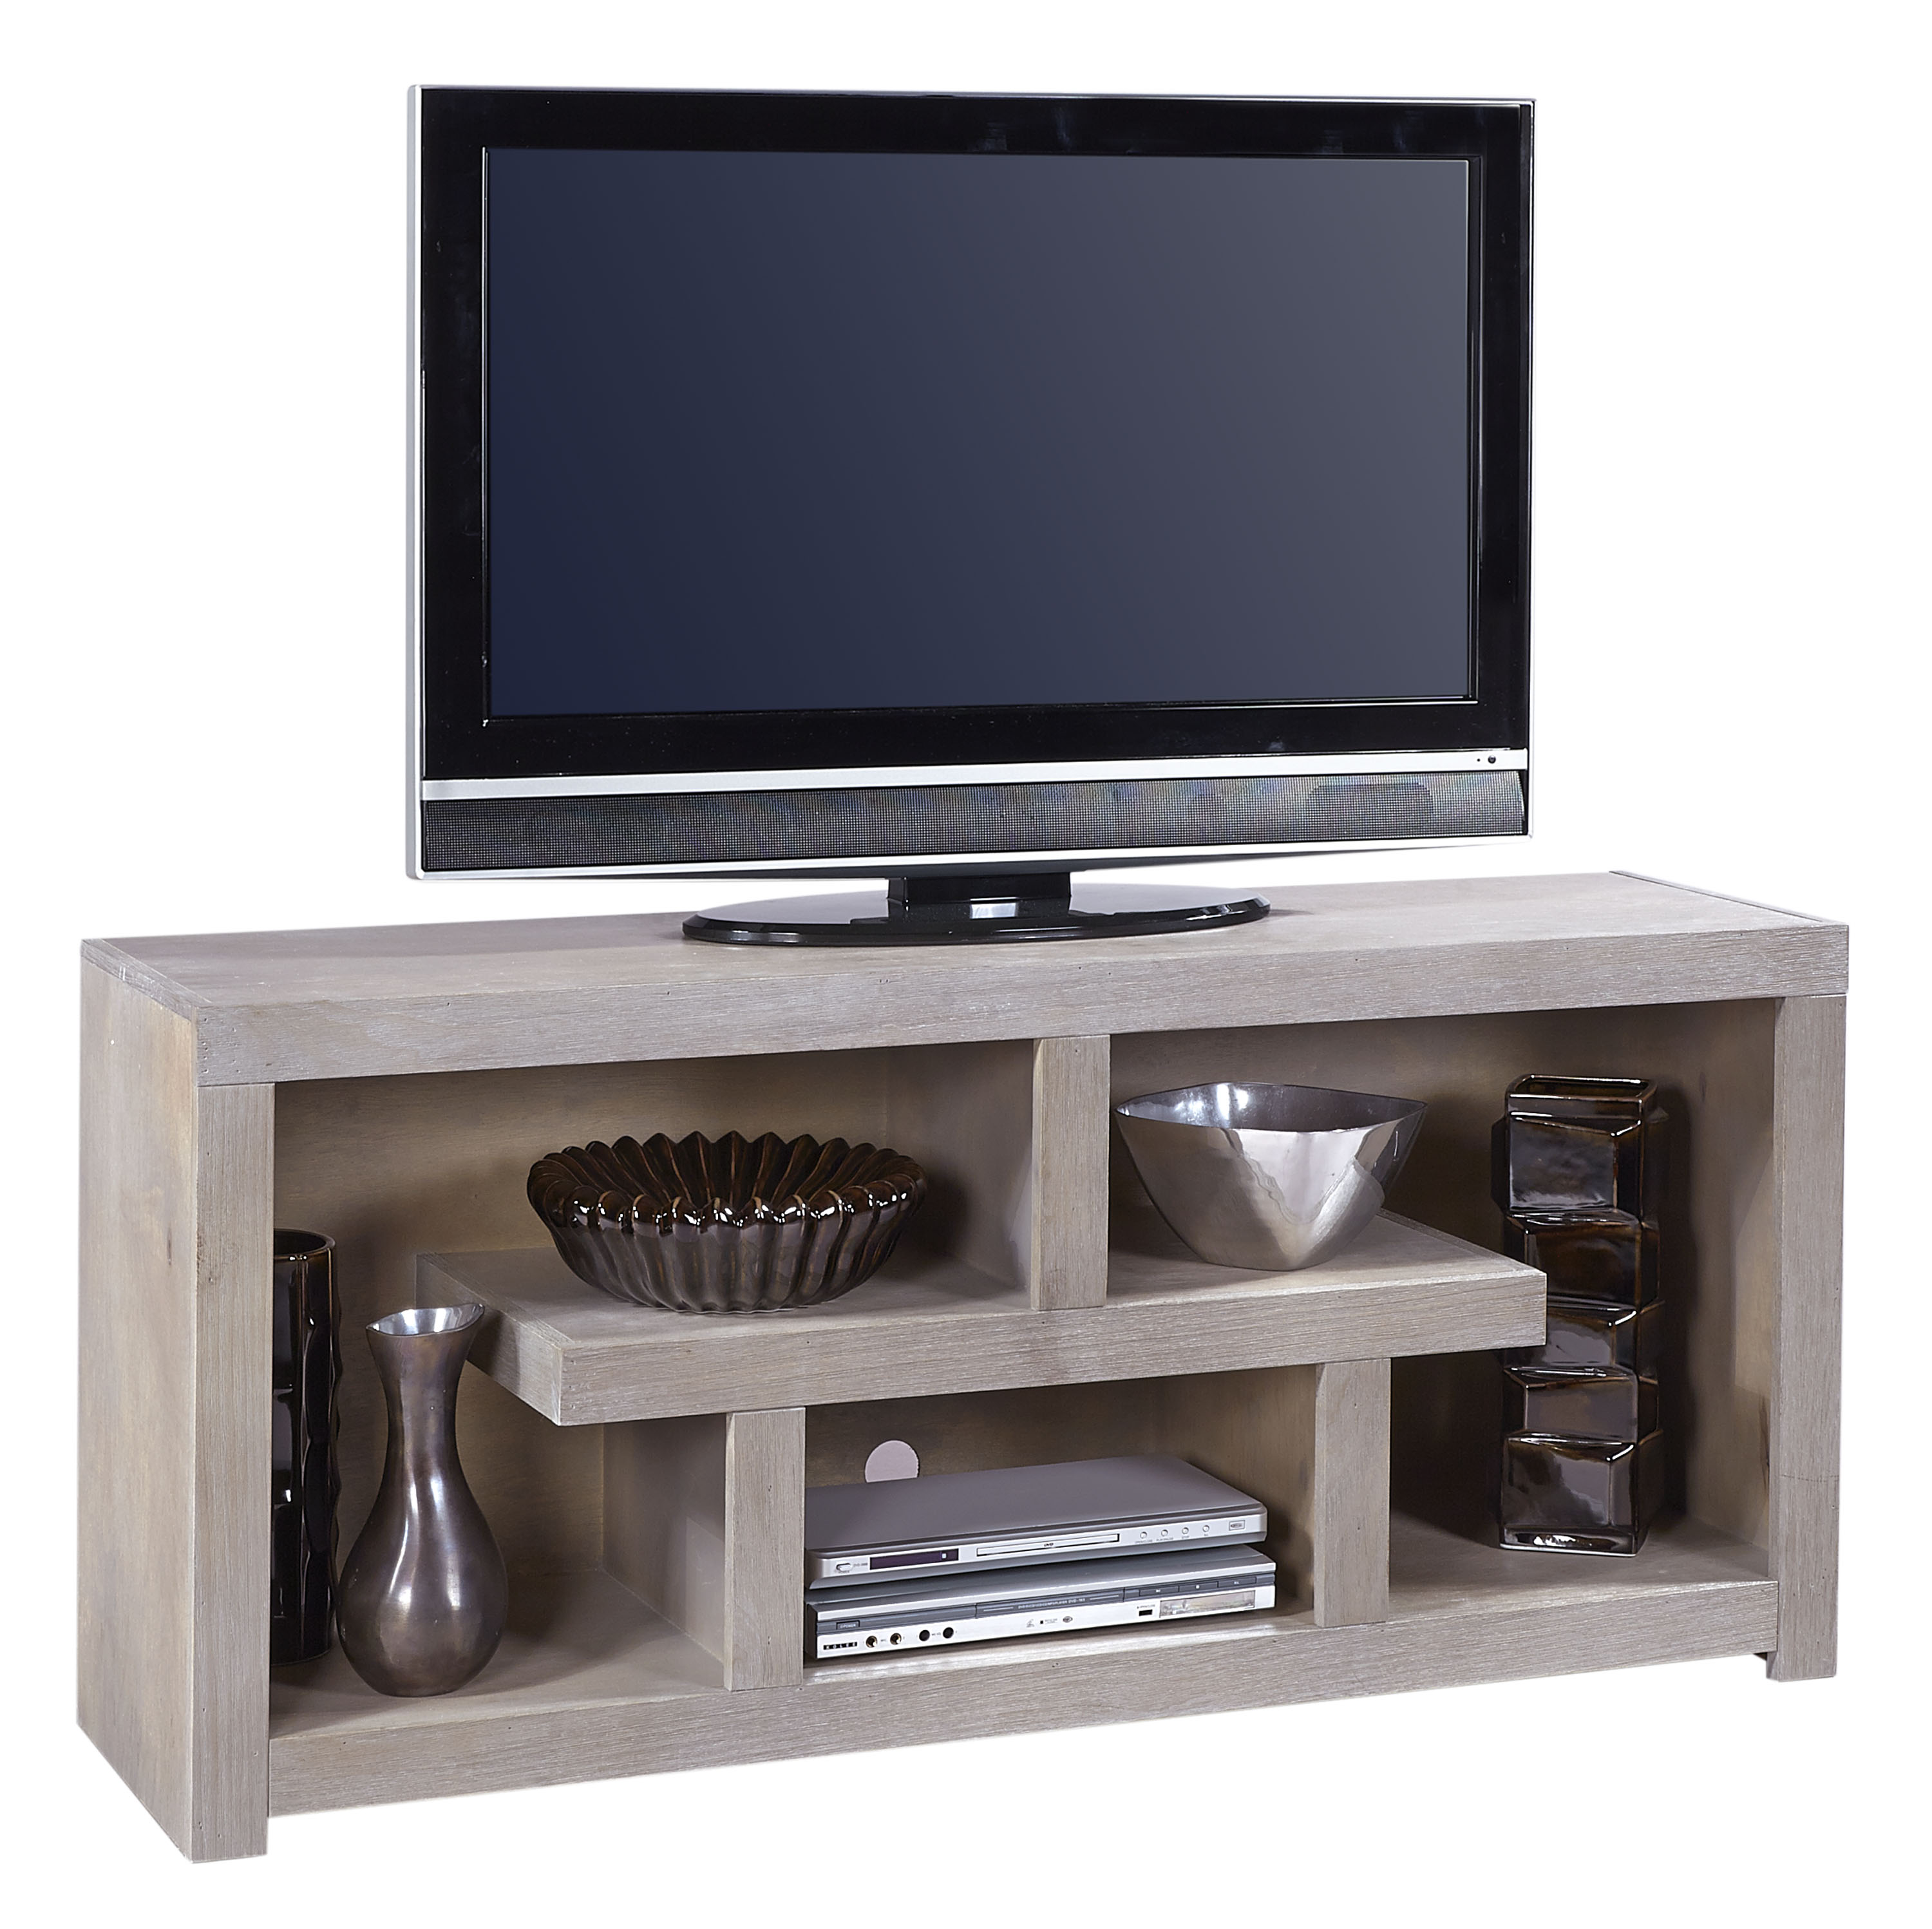 Aspenhome Contemporary Driftwood 60 Inch Console - Item Number: WML1029-DRF